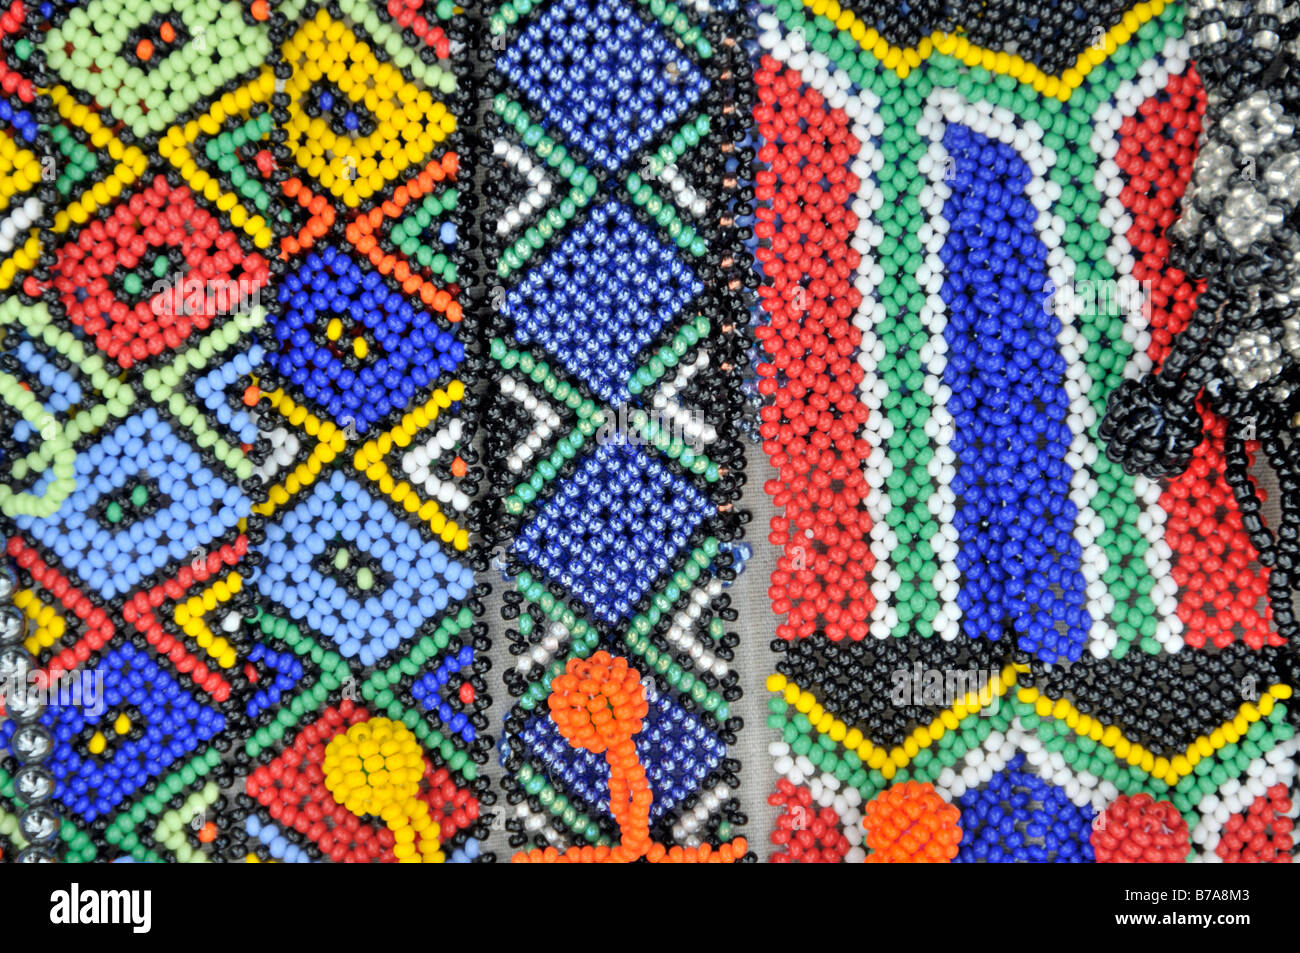 Inexpensive jewellery, bulk articles, souvenirs, Santa Lucia, South Africa, Africa - Stock Image